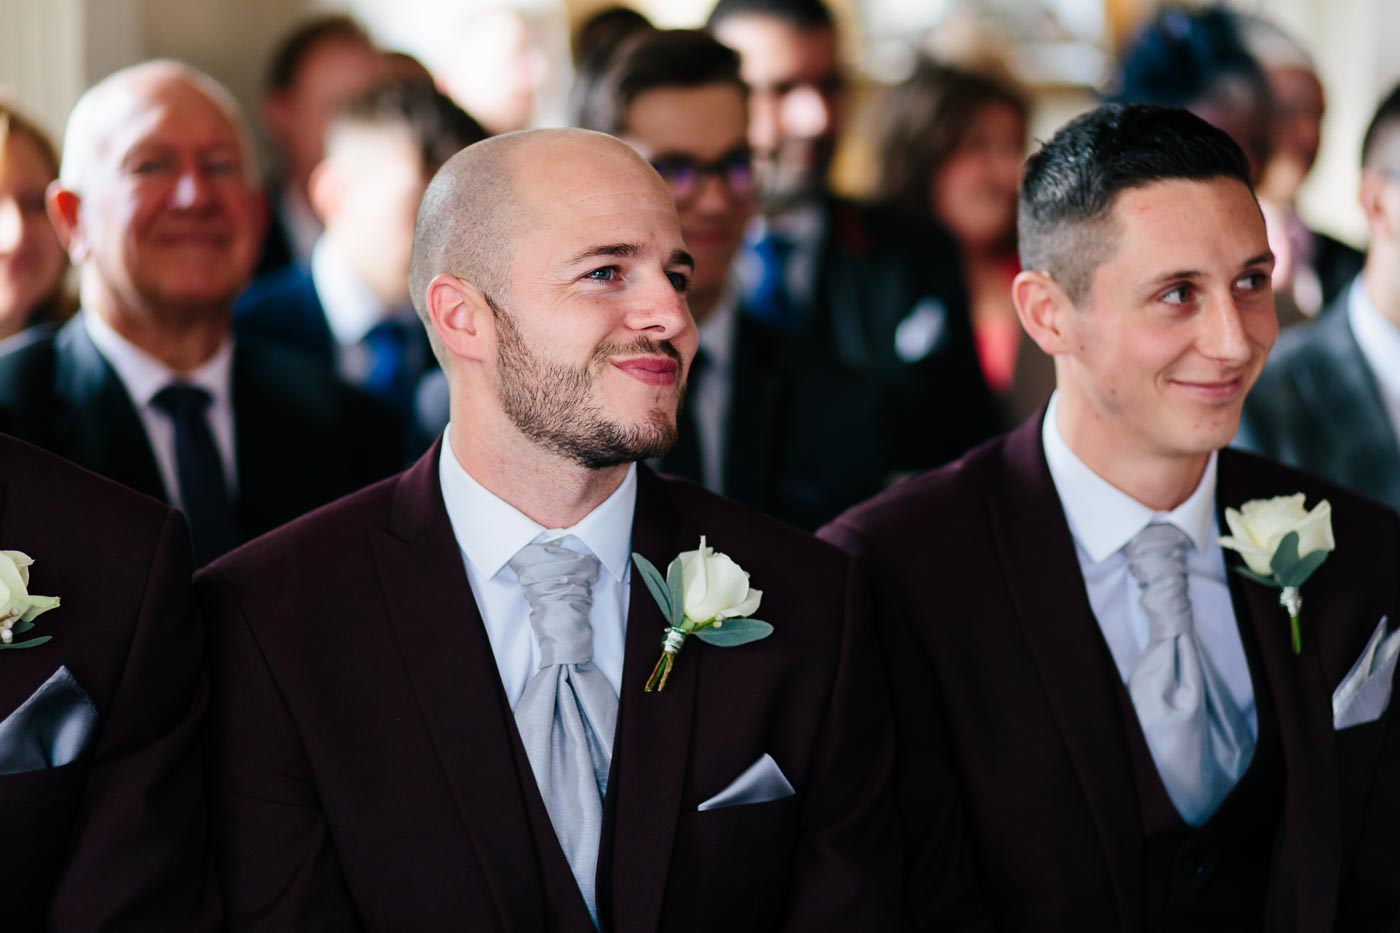 one of the groomsmen smiling in the ceremony